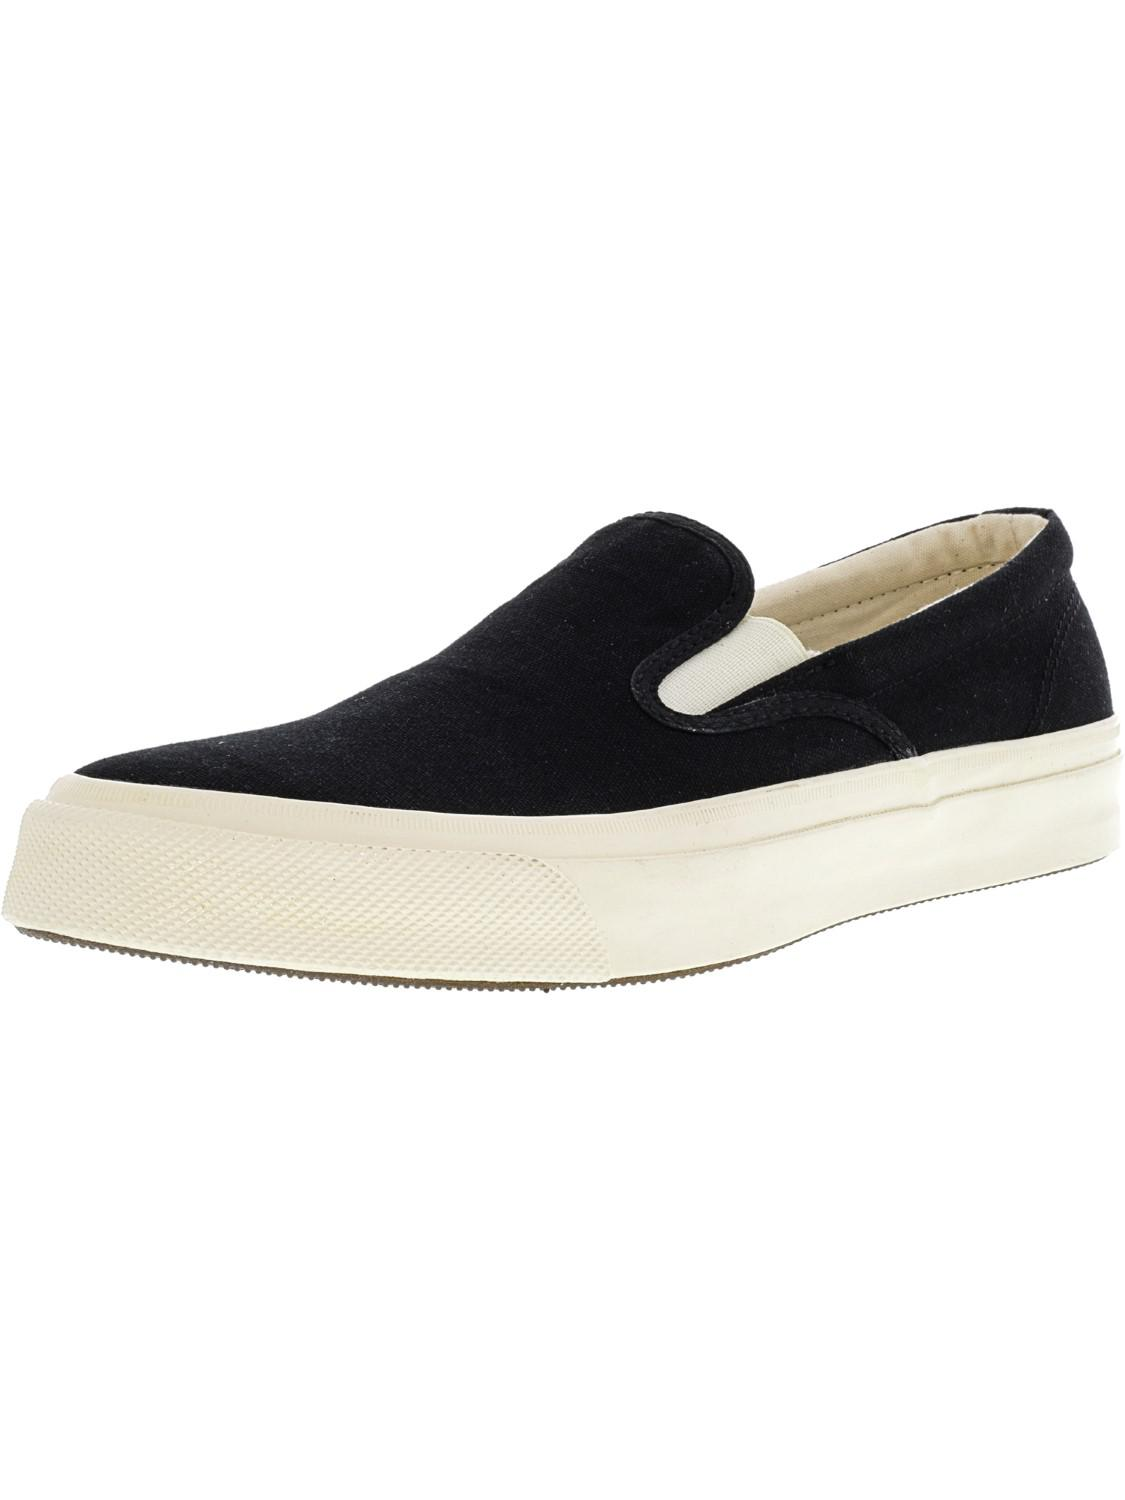 d700190b2a5e Lyst - Converse Deck Star 67 Slip On Ankle-high Canvas Slip-on Shoes ...